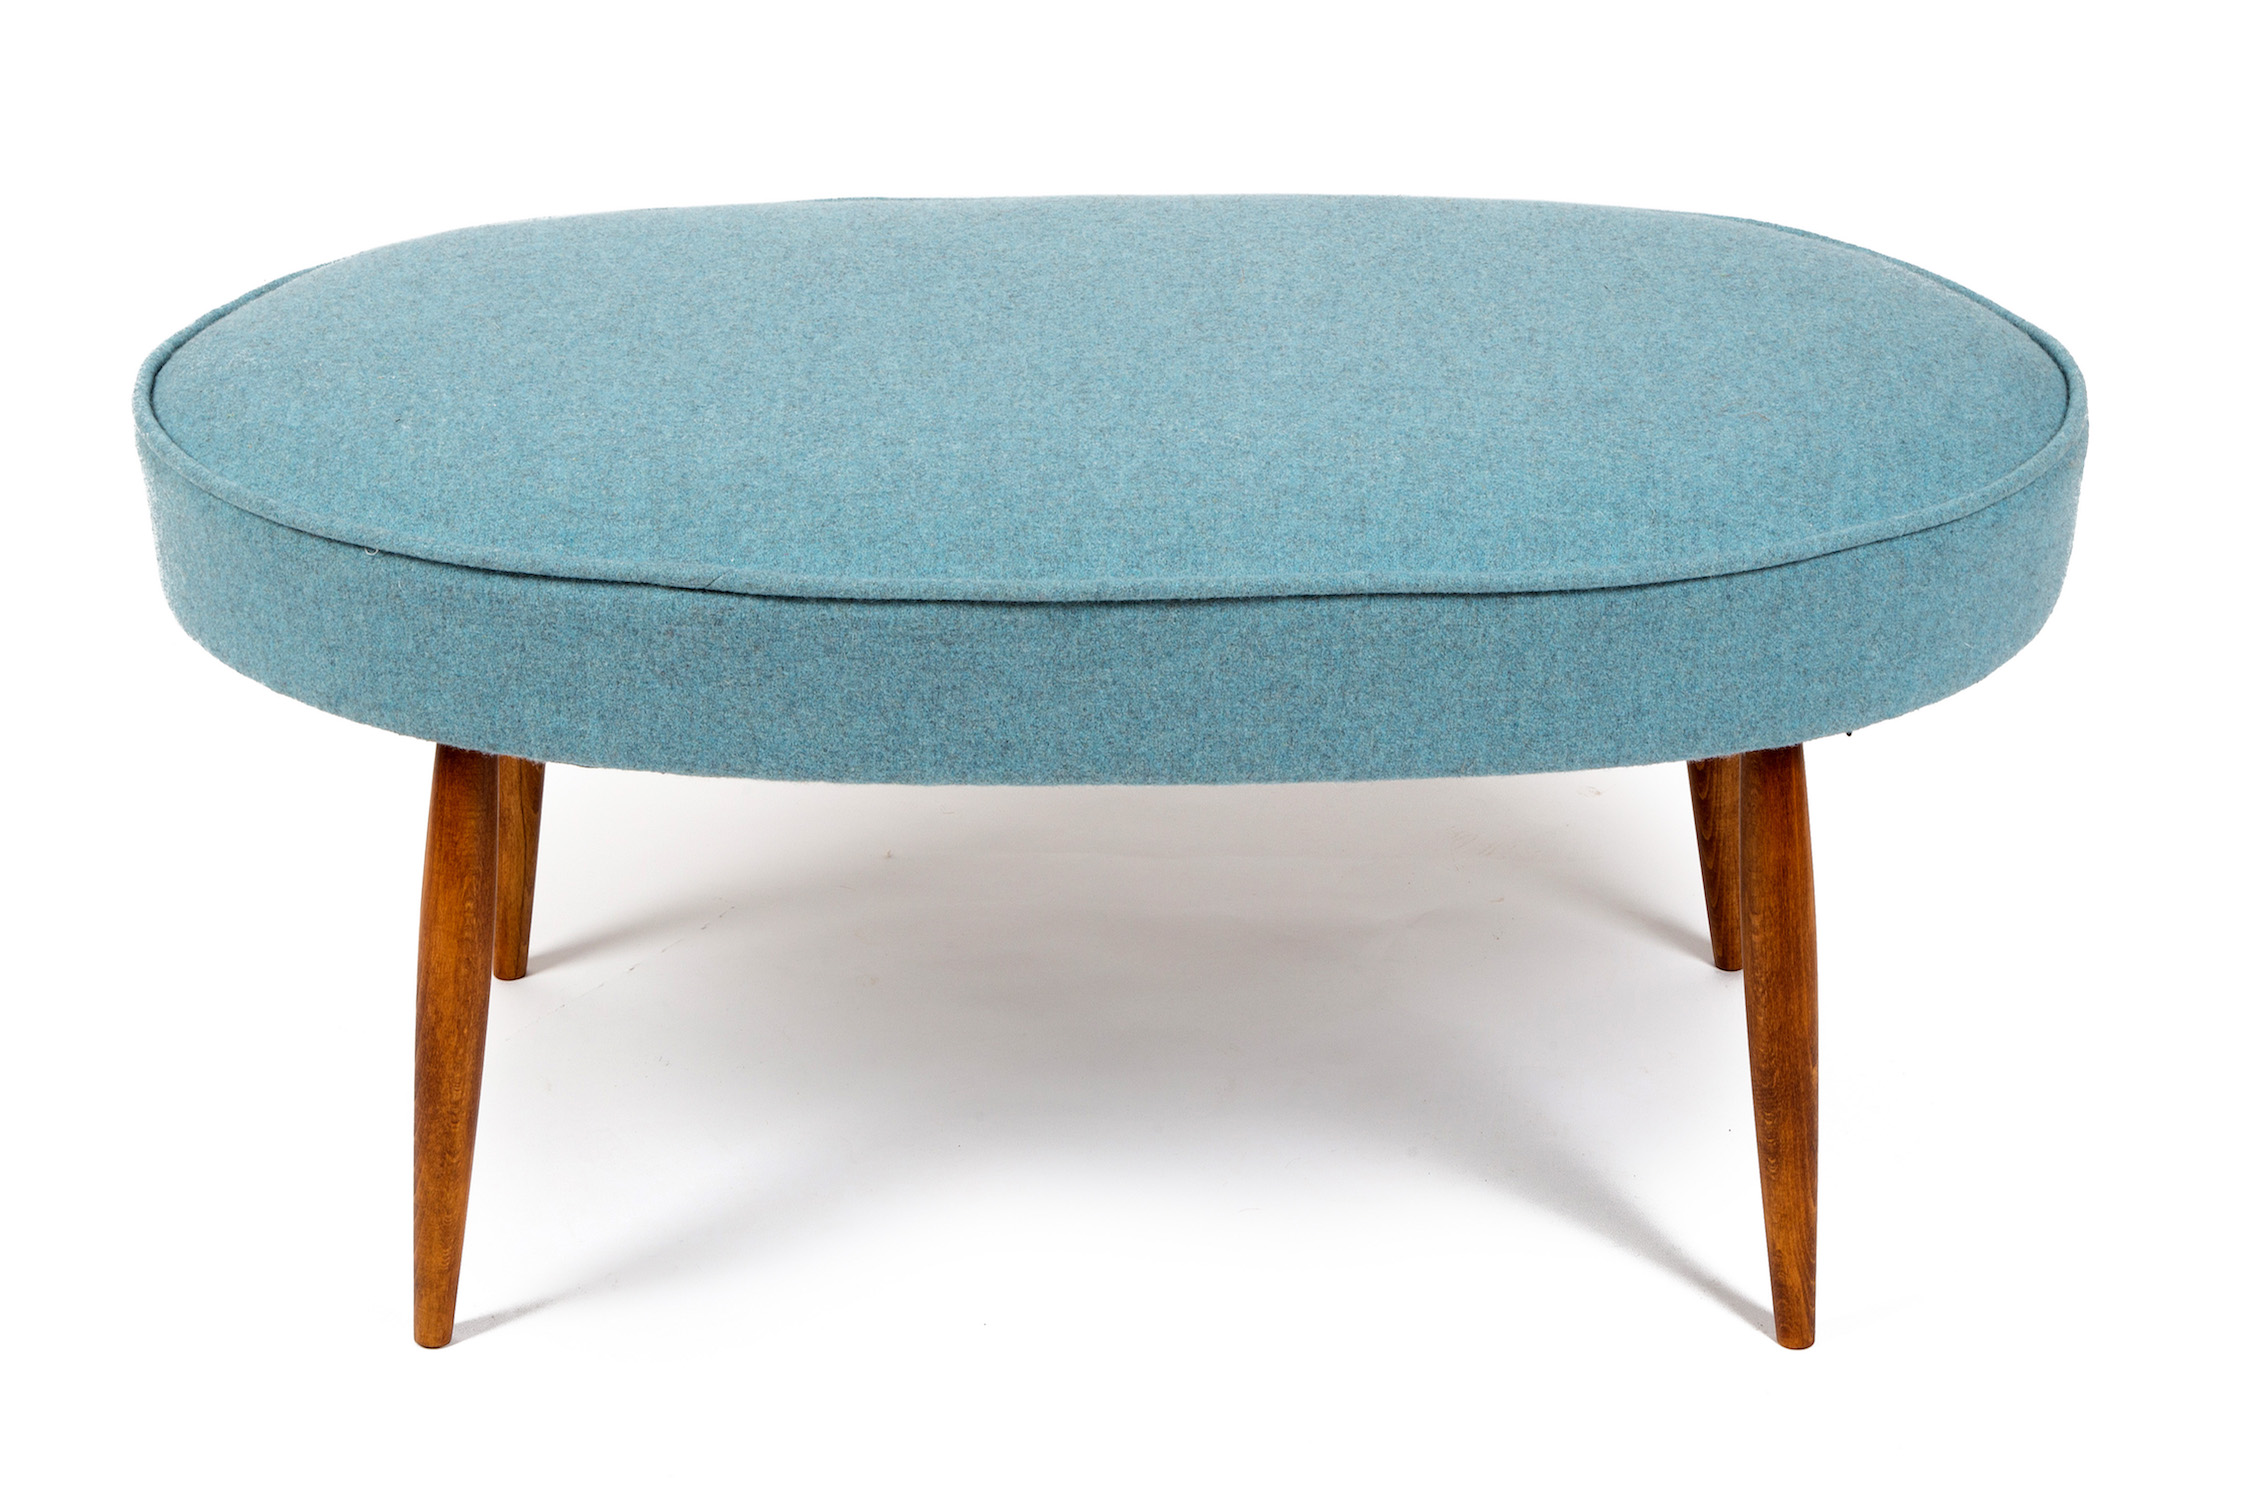 Oval Bordered and Piped Footstool with Mid-Century Style Legs